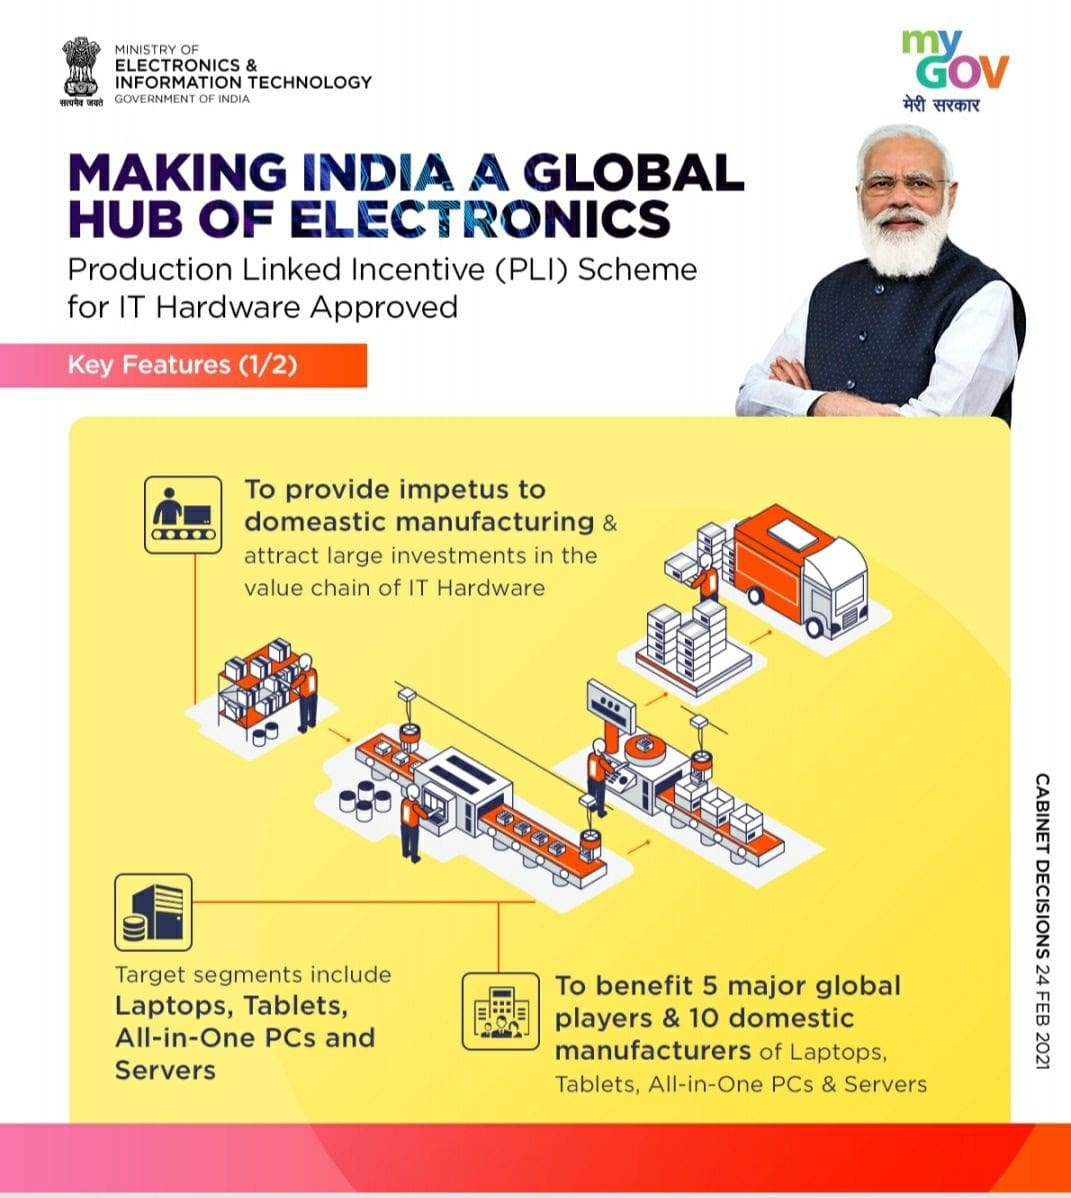 <p>Union Cabinet headed by Prime Minister Narendra Modi has approved Production Linked Incentive (PLI) Scheme for IT Hardware Products- Laptops, Tablets, All-in-One Personal Computers…